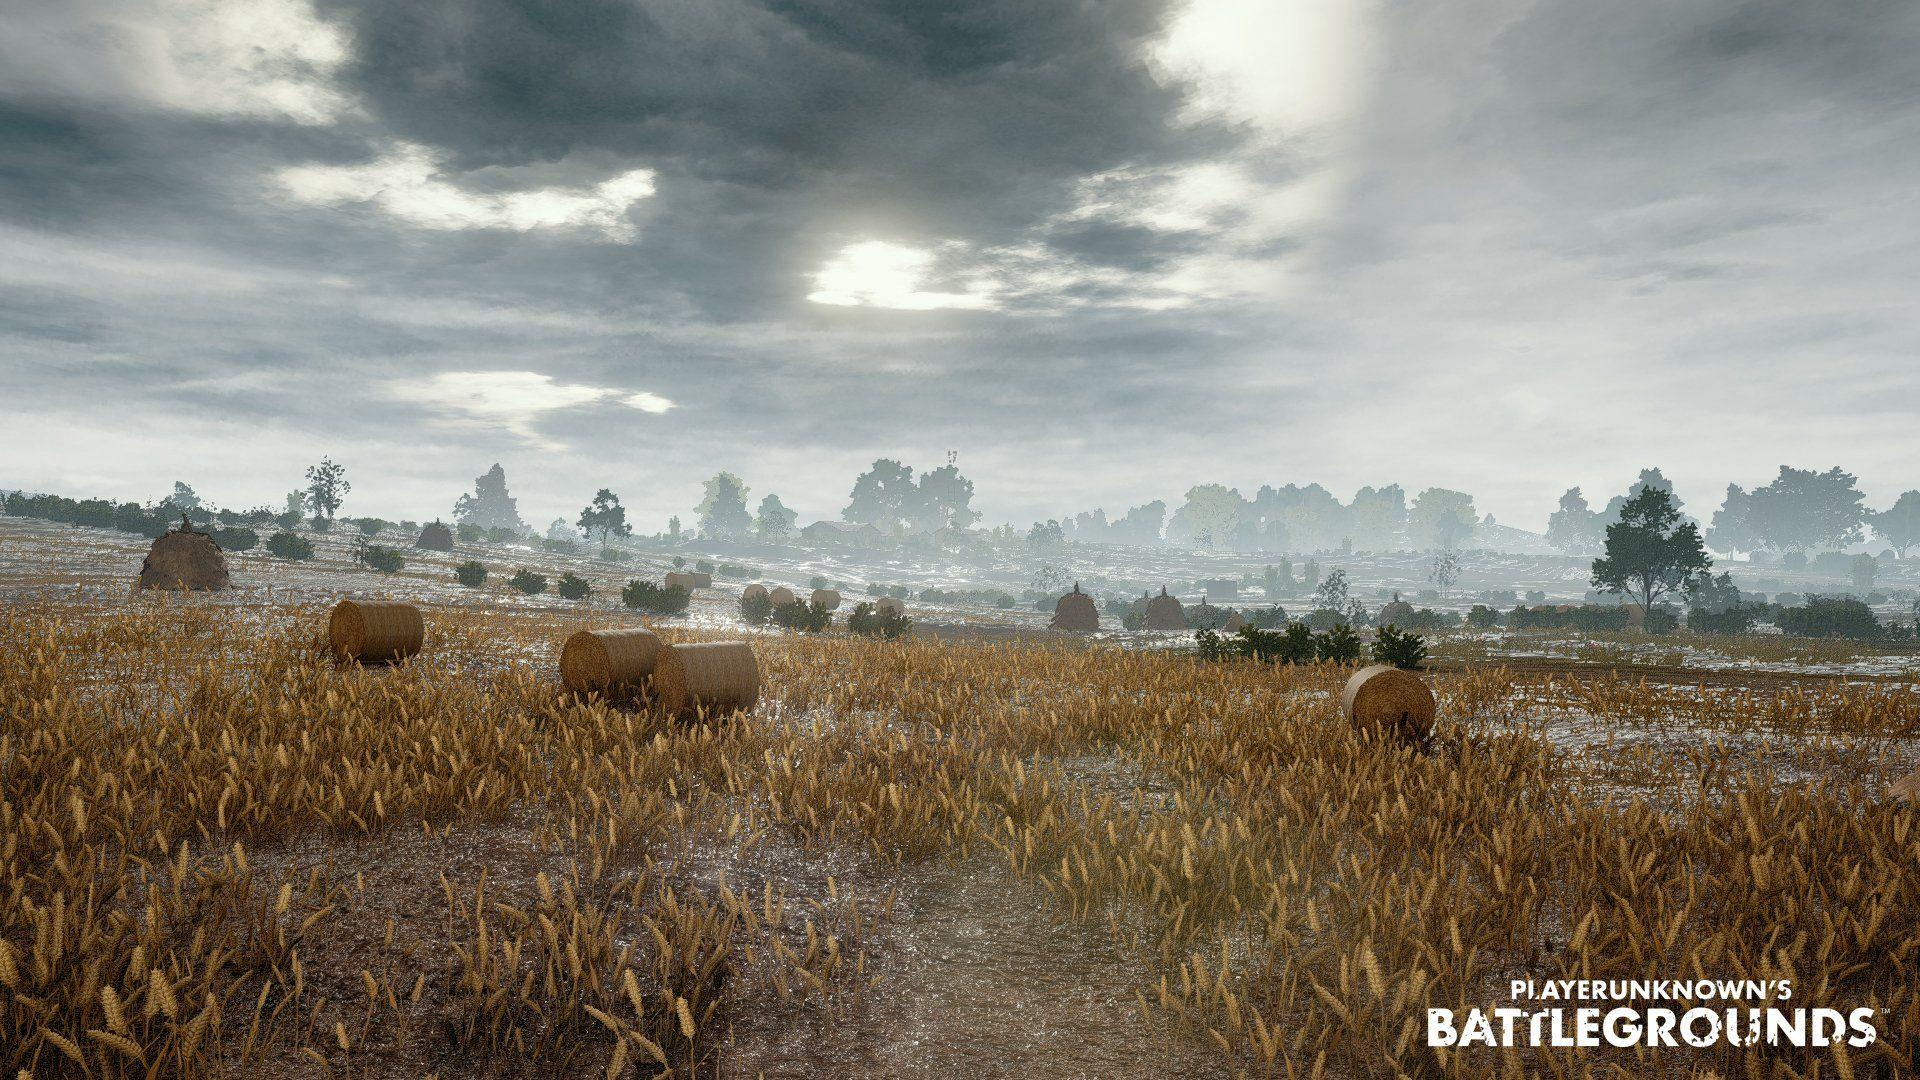 4k Playerunknowns Battlegrounds: PUBG Wallpapers